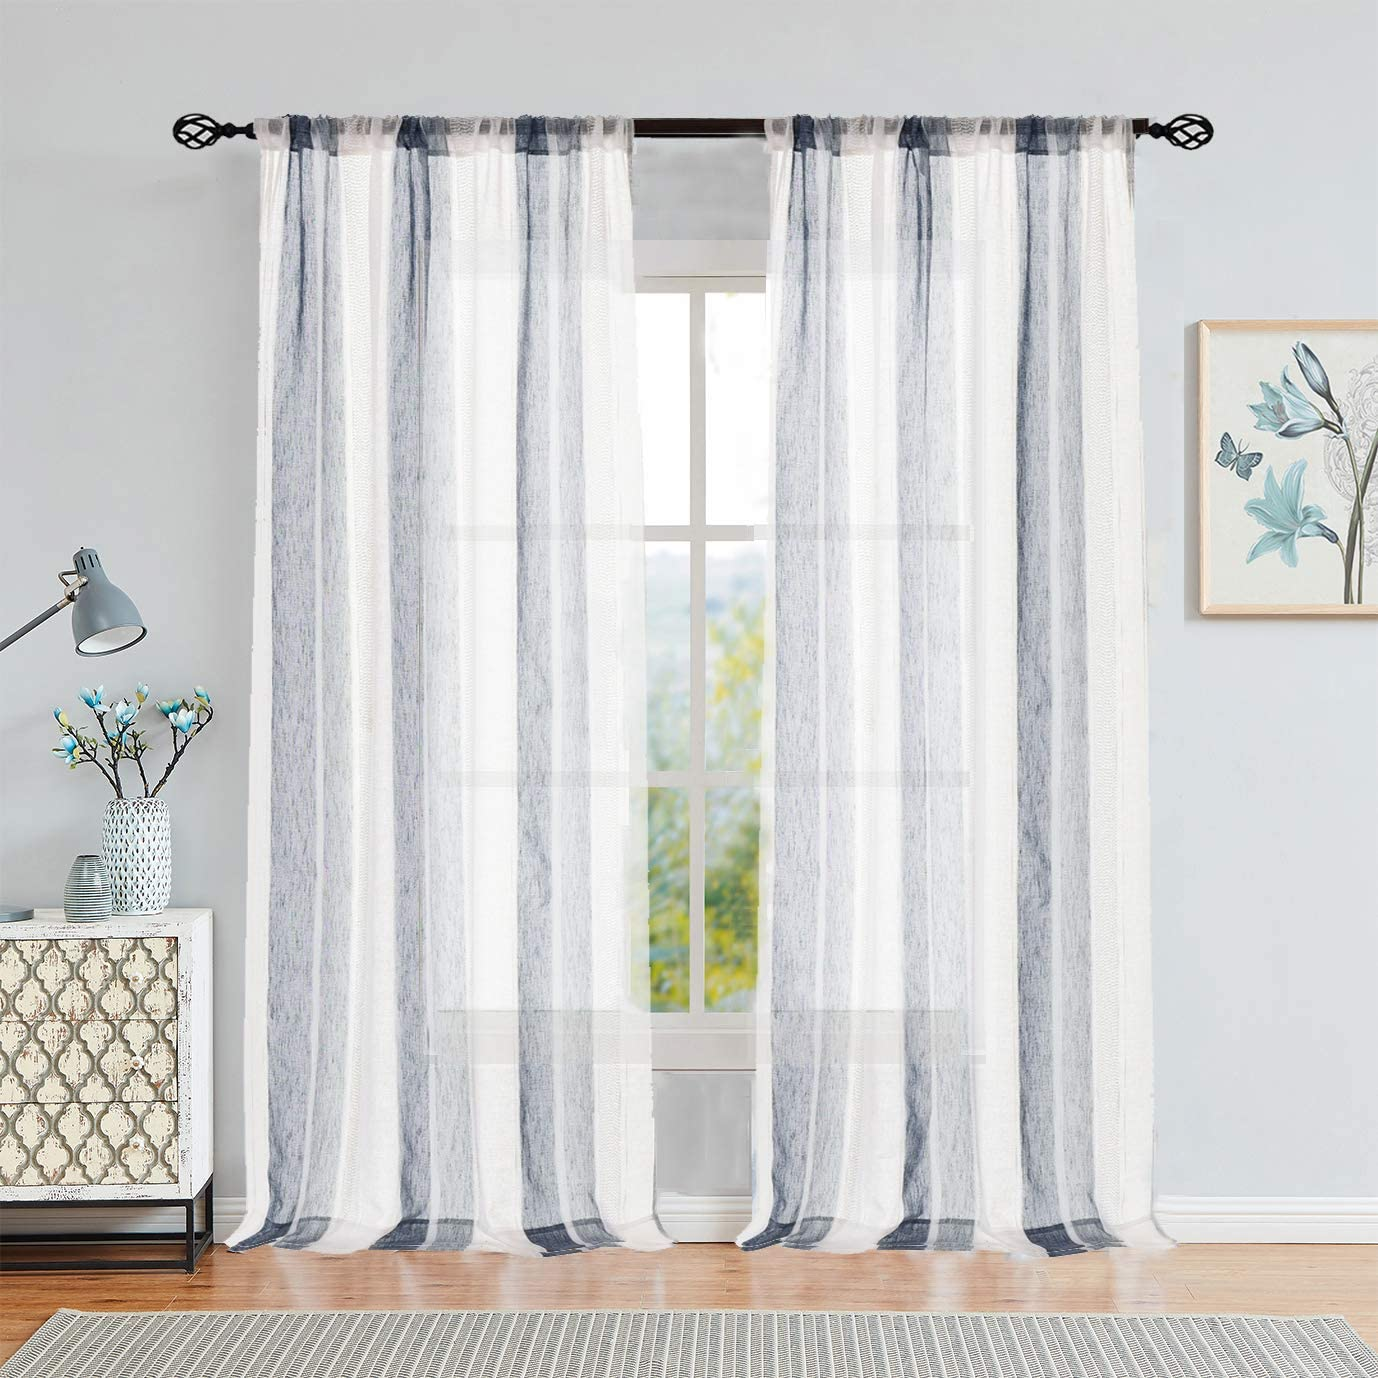 Central Park Sheer Navy Blue And White Stripe Farmhouse Curtains Boucle Linen Window Curtain Panel Pairs Yarn Dyed Woven 84 Inches Long For Living Room Bedroom 2 Pack Rod Pocket Rustic Living